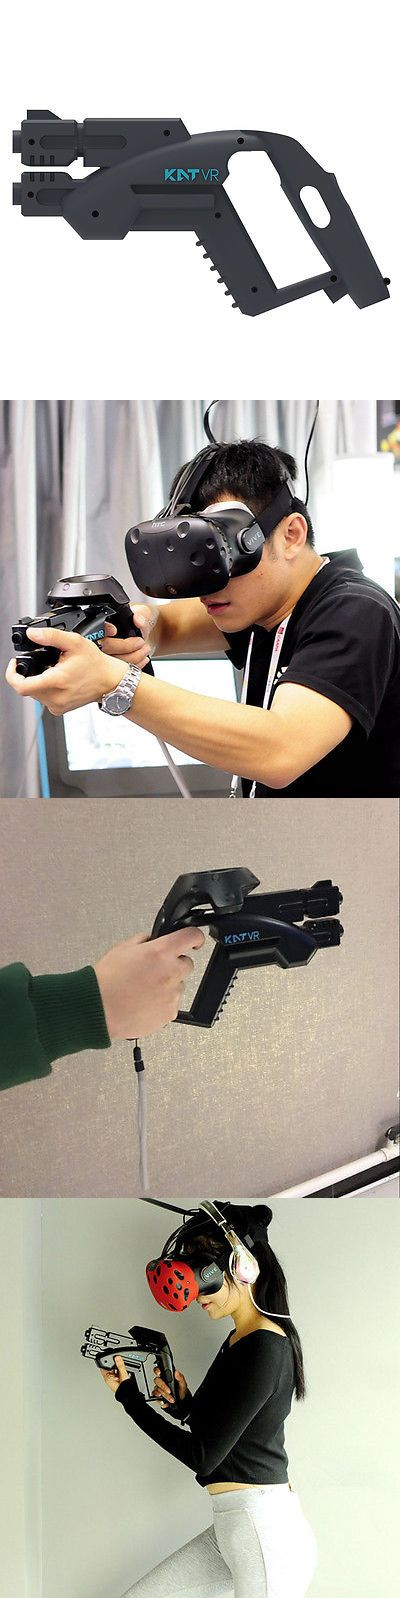 Other Virtual Reality Accs: Vr Handgun Shooting Game Small Pistol Gun For Htc Vive Glasses Vr Shop BUY IT NOW ONLY: $55.0